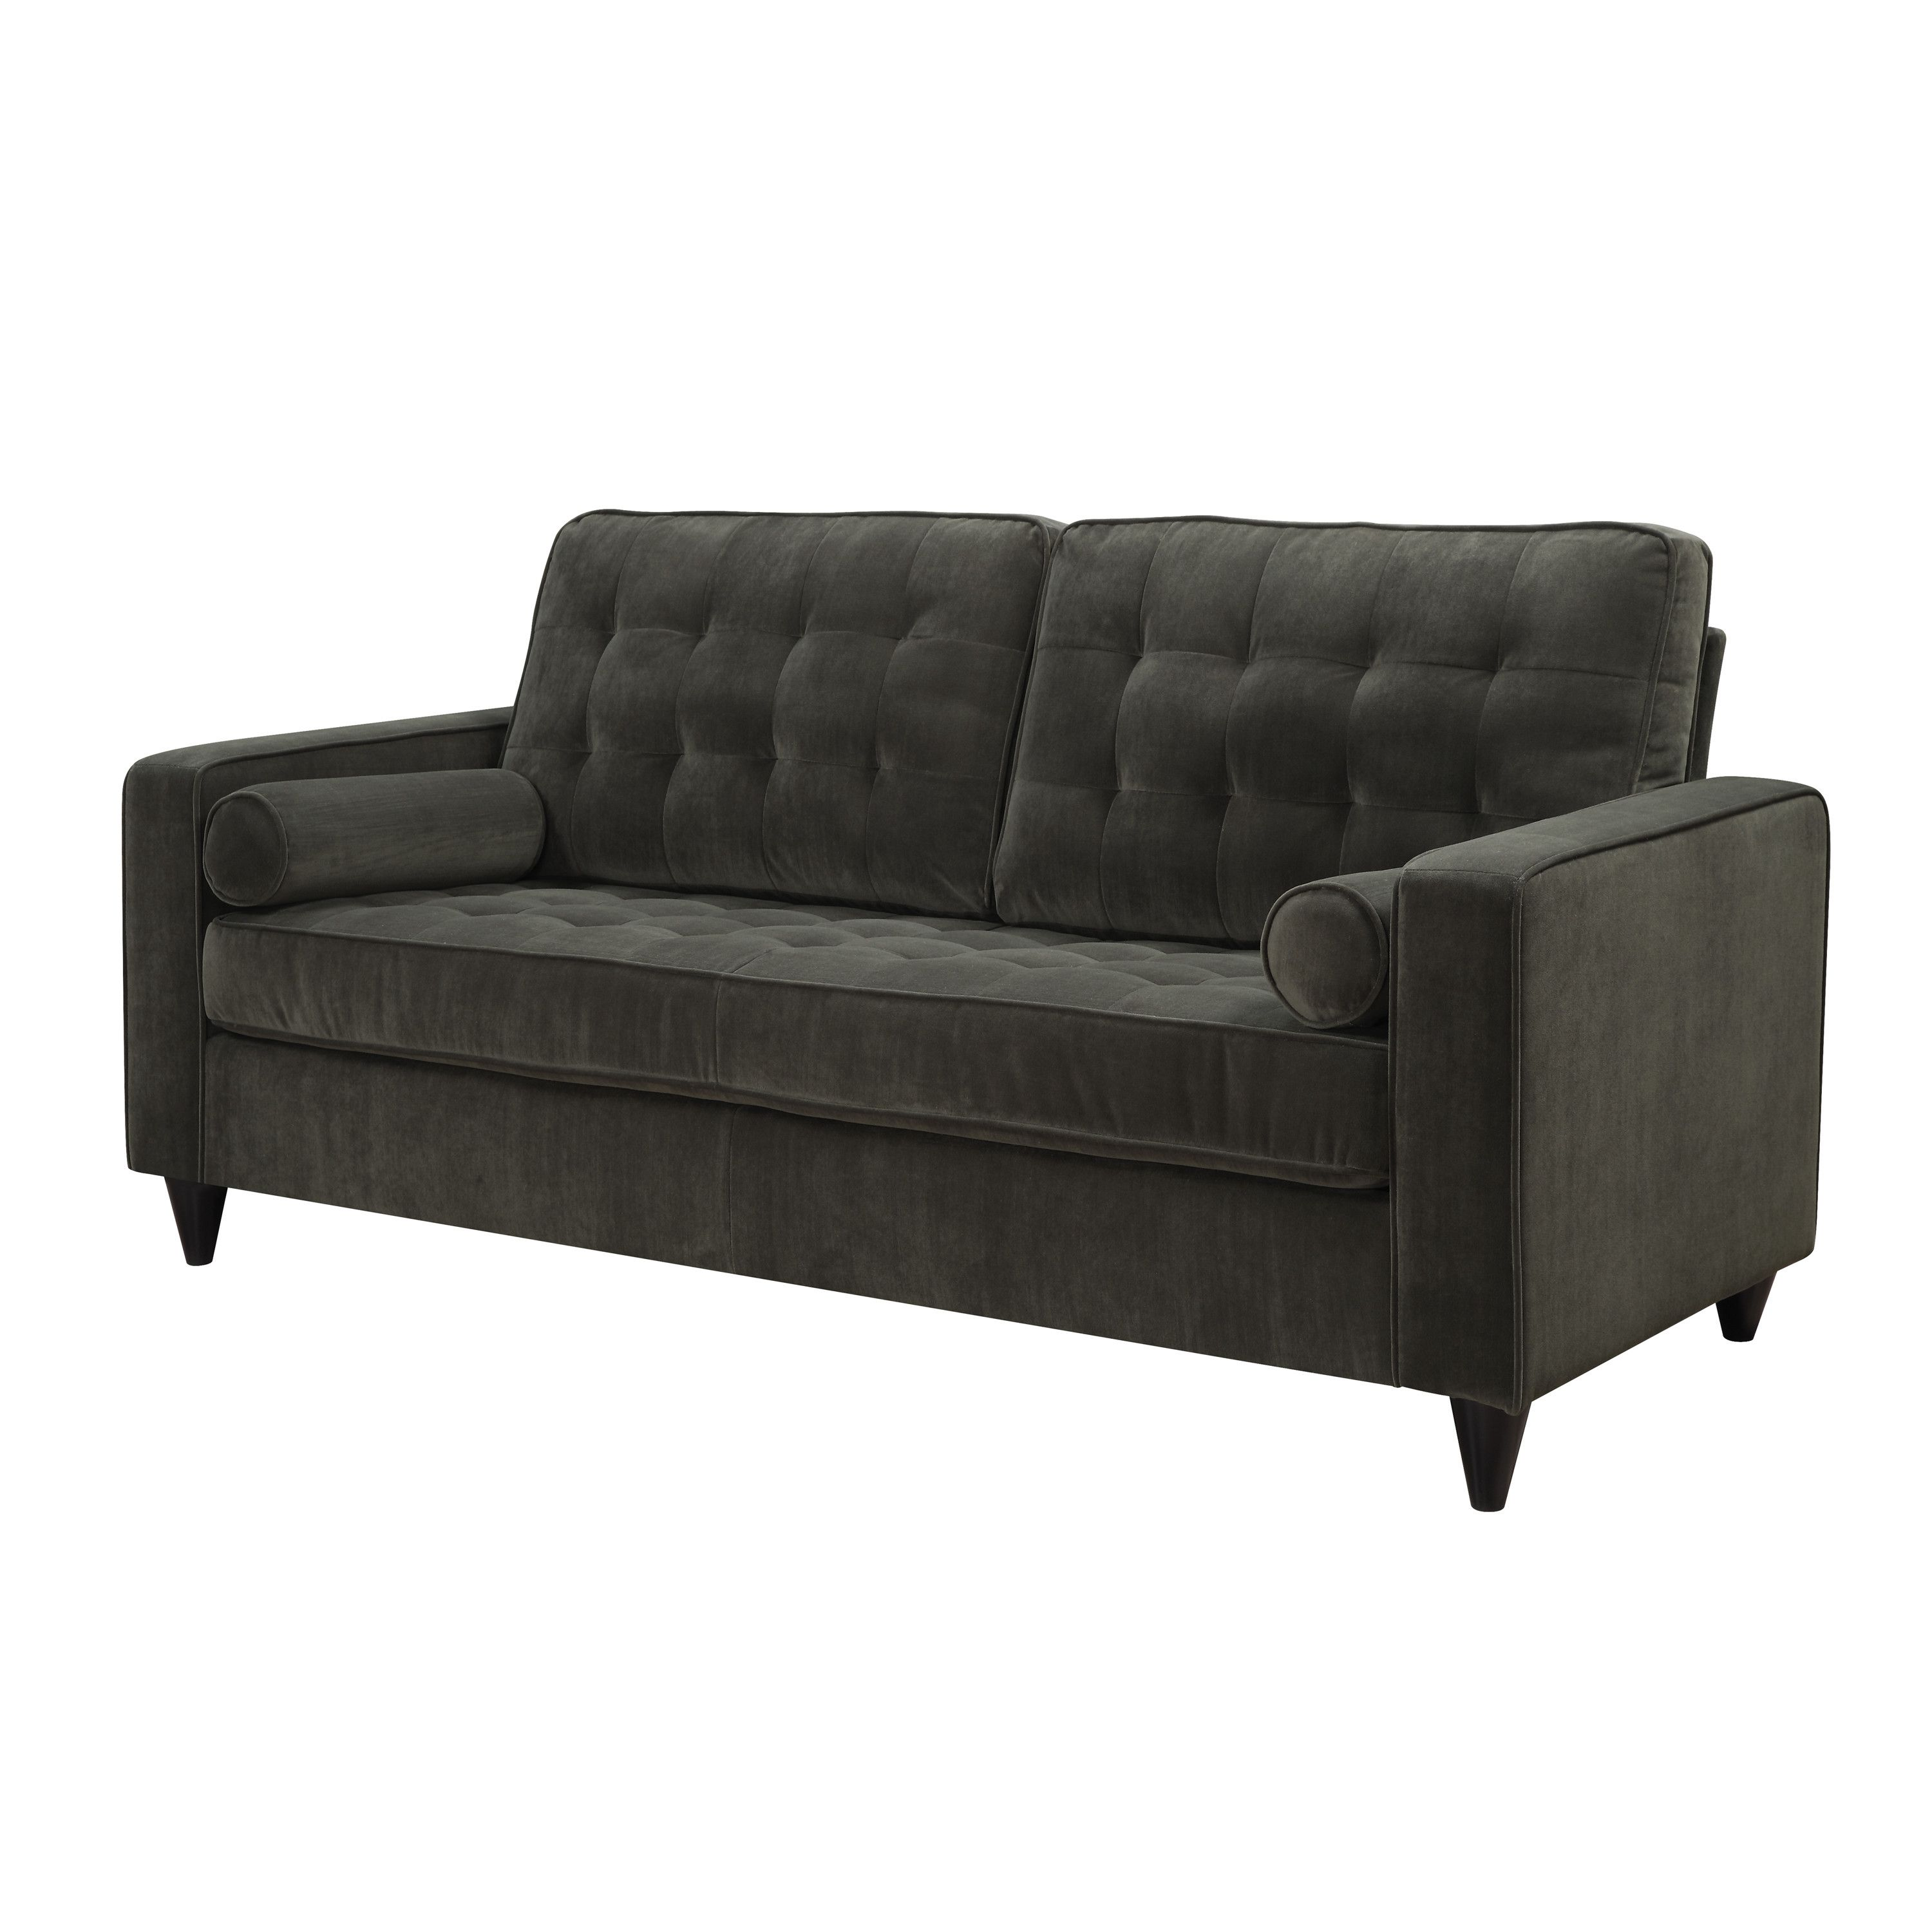 You Ll Love The Arrieta Sofa At Wayfair Great Deals On All Furniture Products